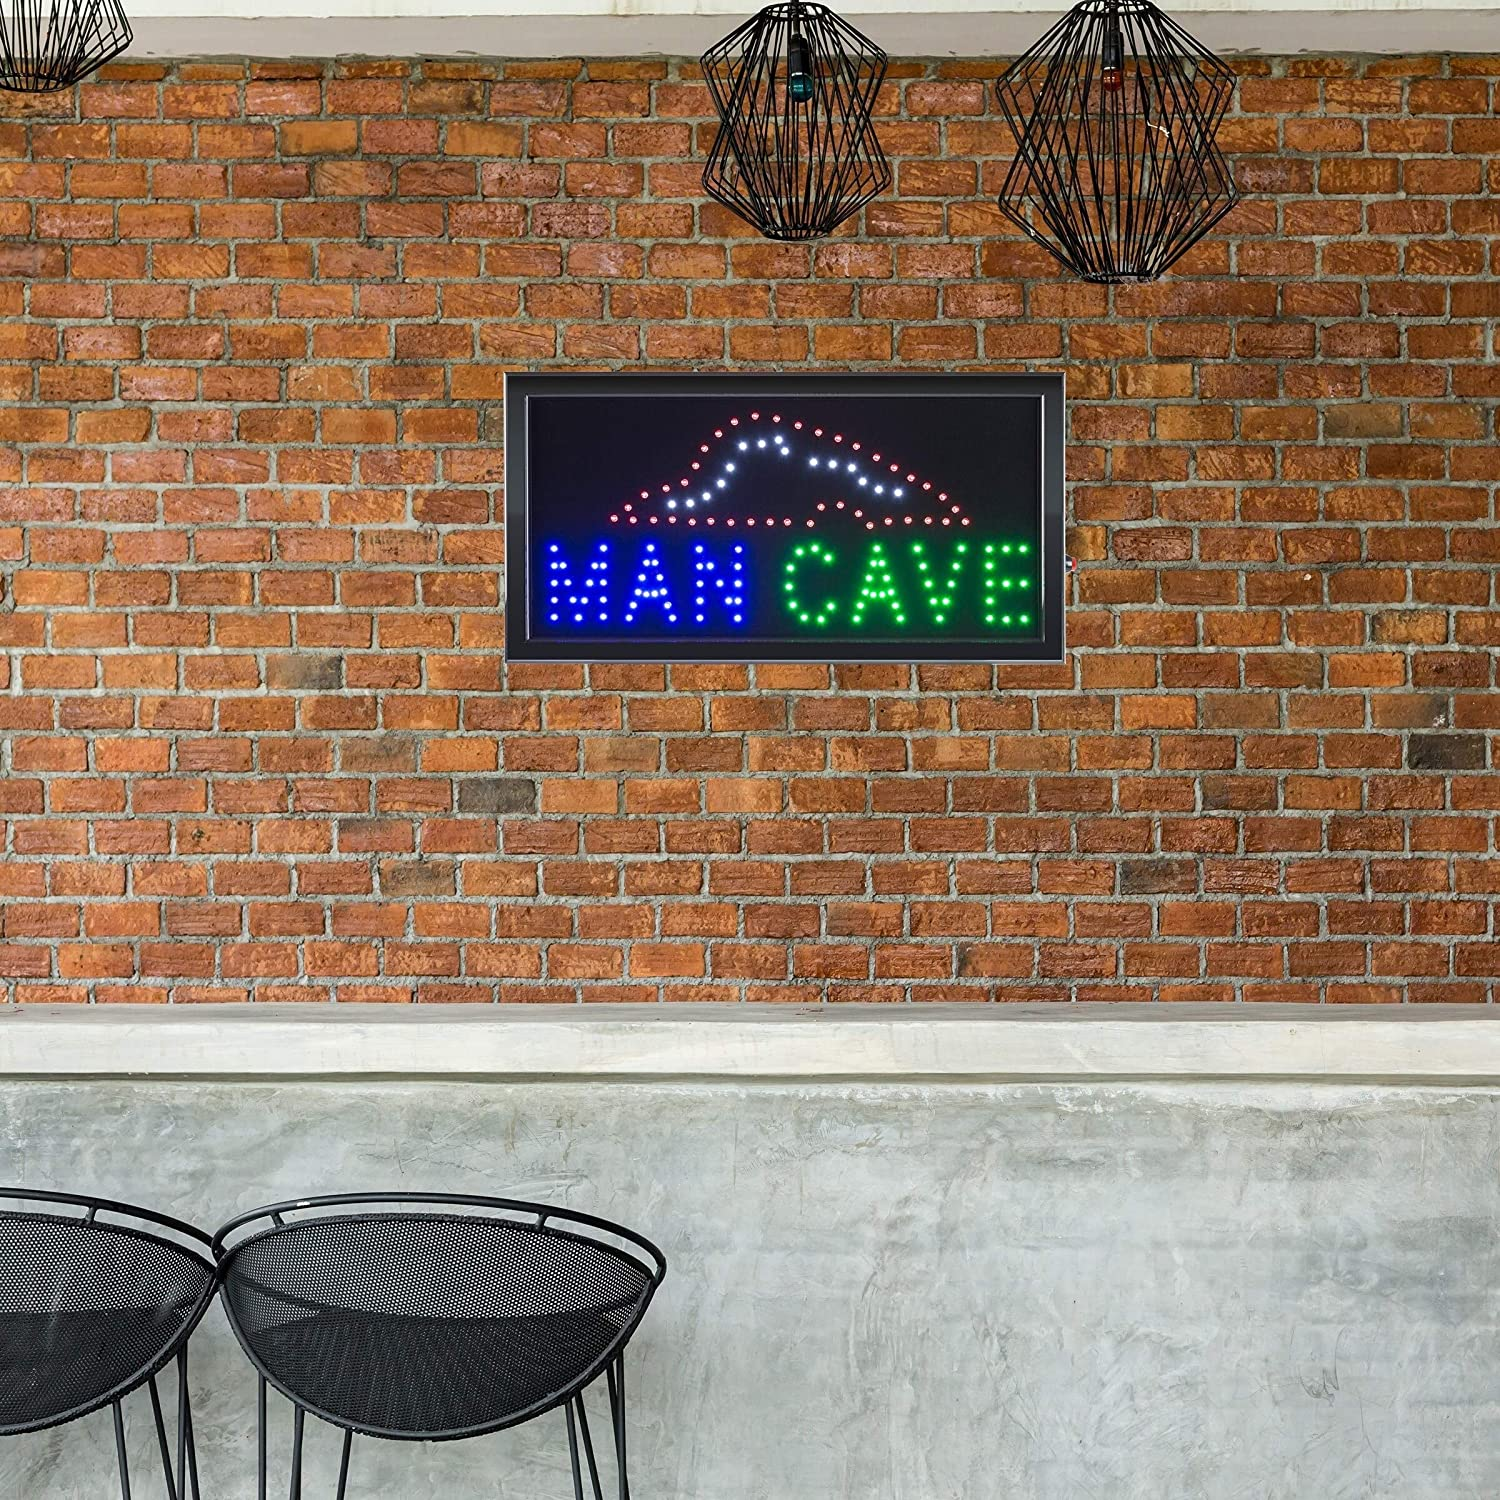 Man Cave Led Sign Lighted Neon Display Animation by Modern Contemporary